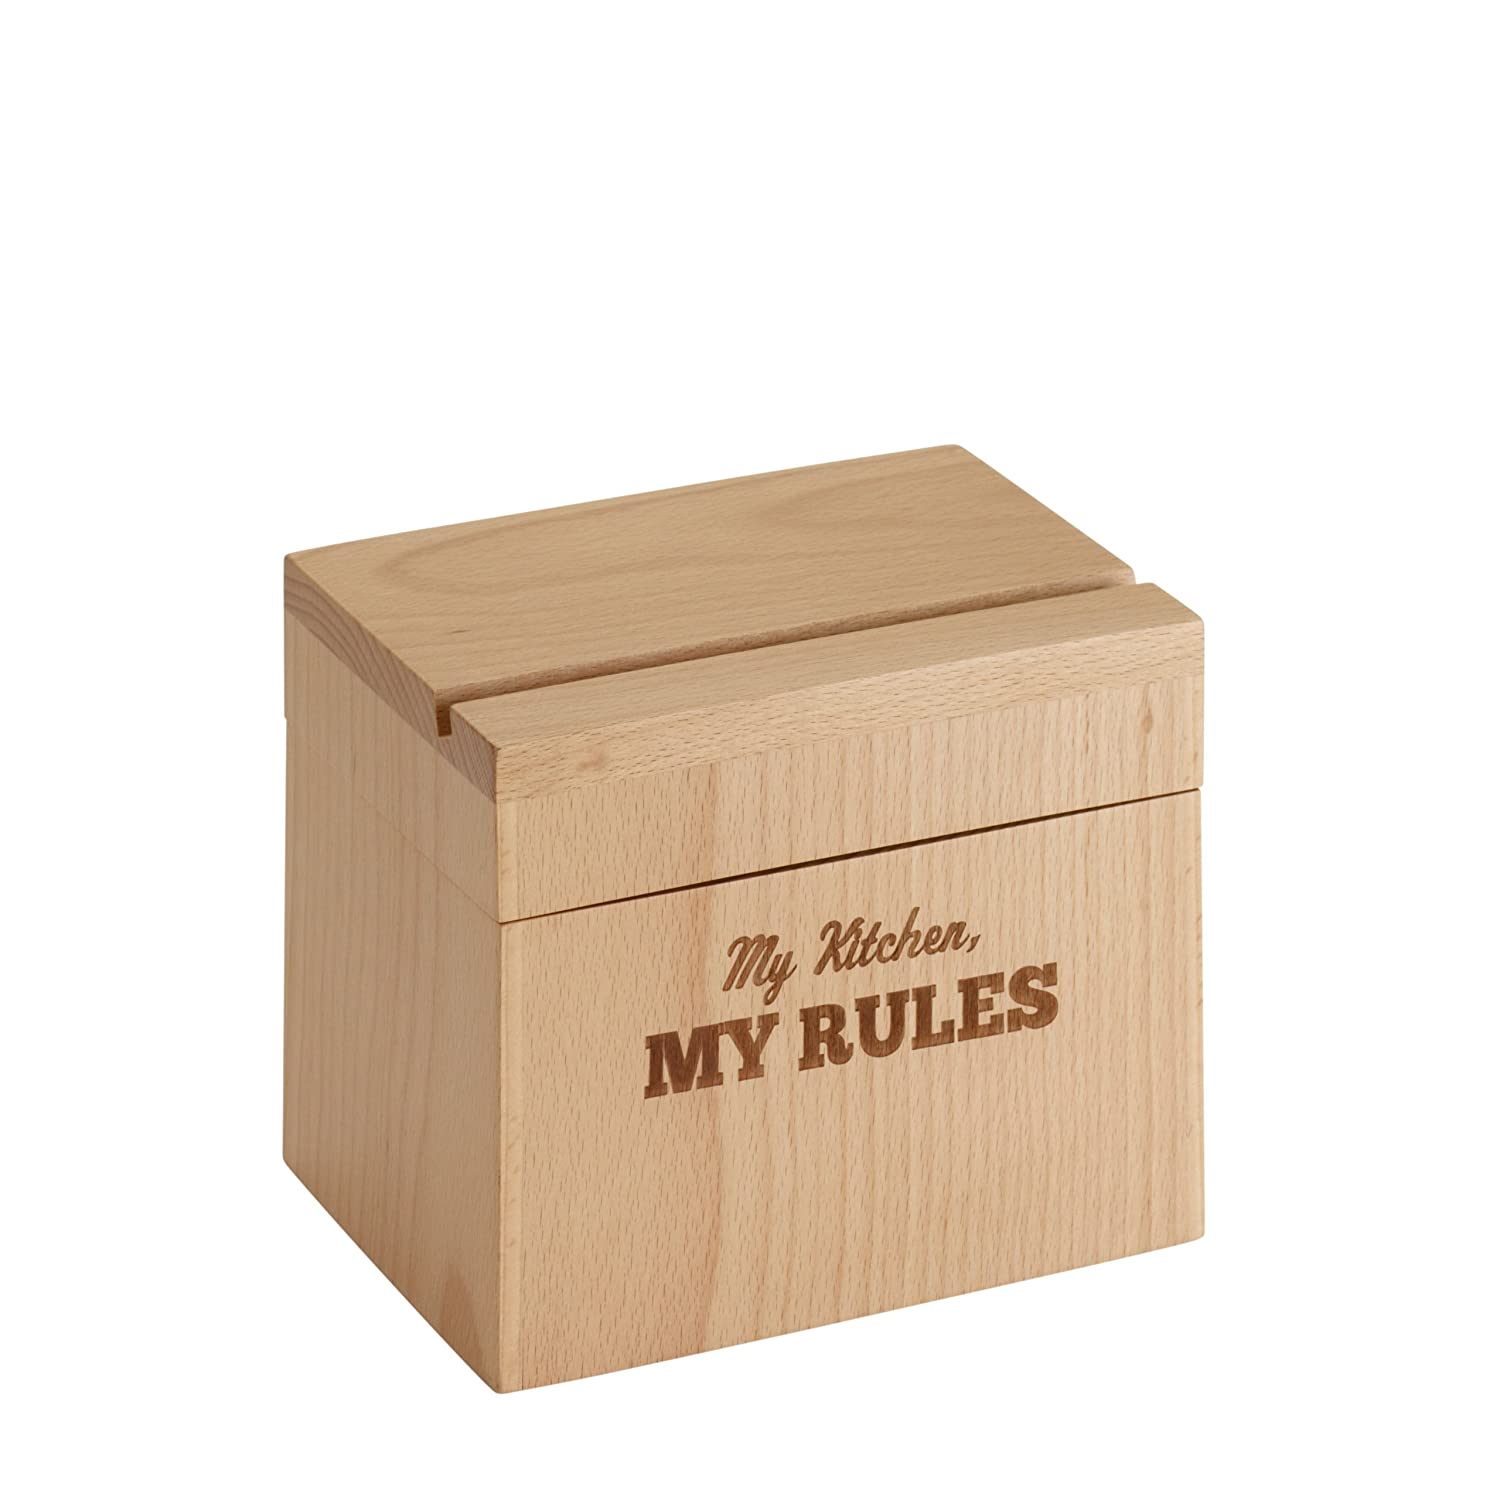 Cake Boss Countertop Accessories Beechwood Recipe Box with My Kitchen, My Rules Message Meyer 59564